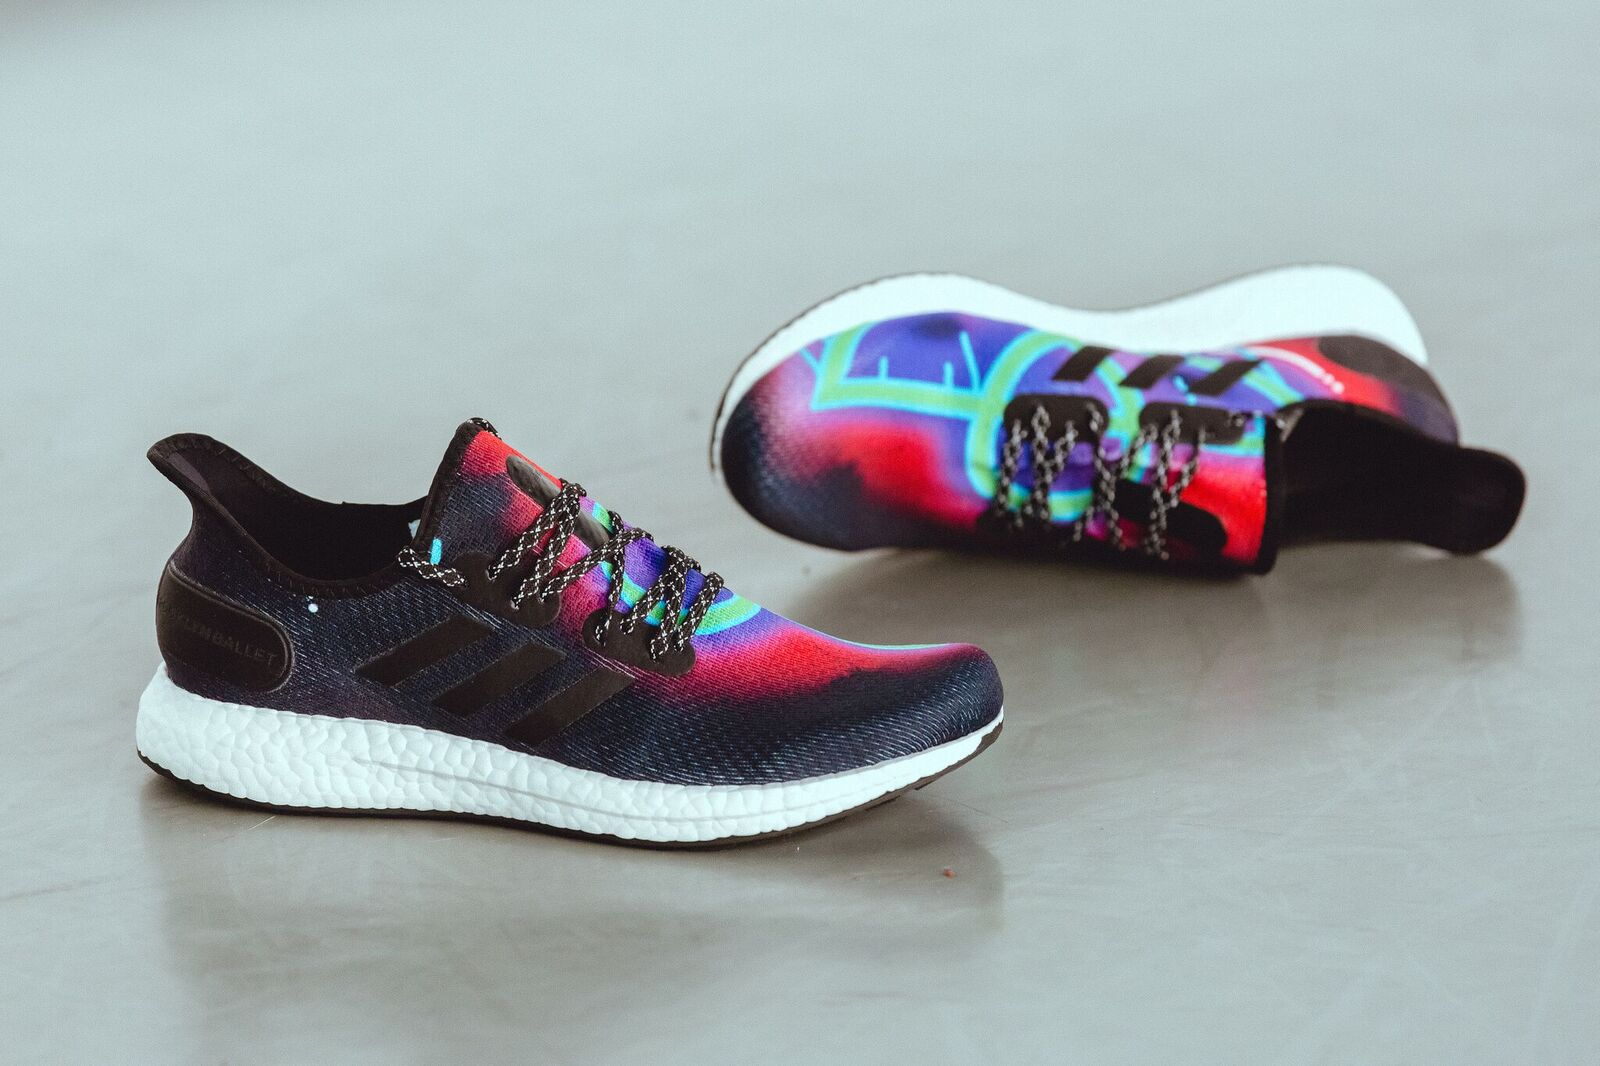 Adidas Launches Limited Edition AM4 Colorways Inspired By LA & NYC